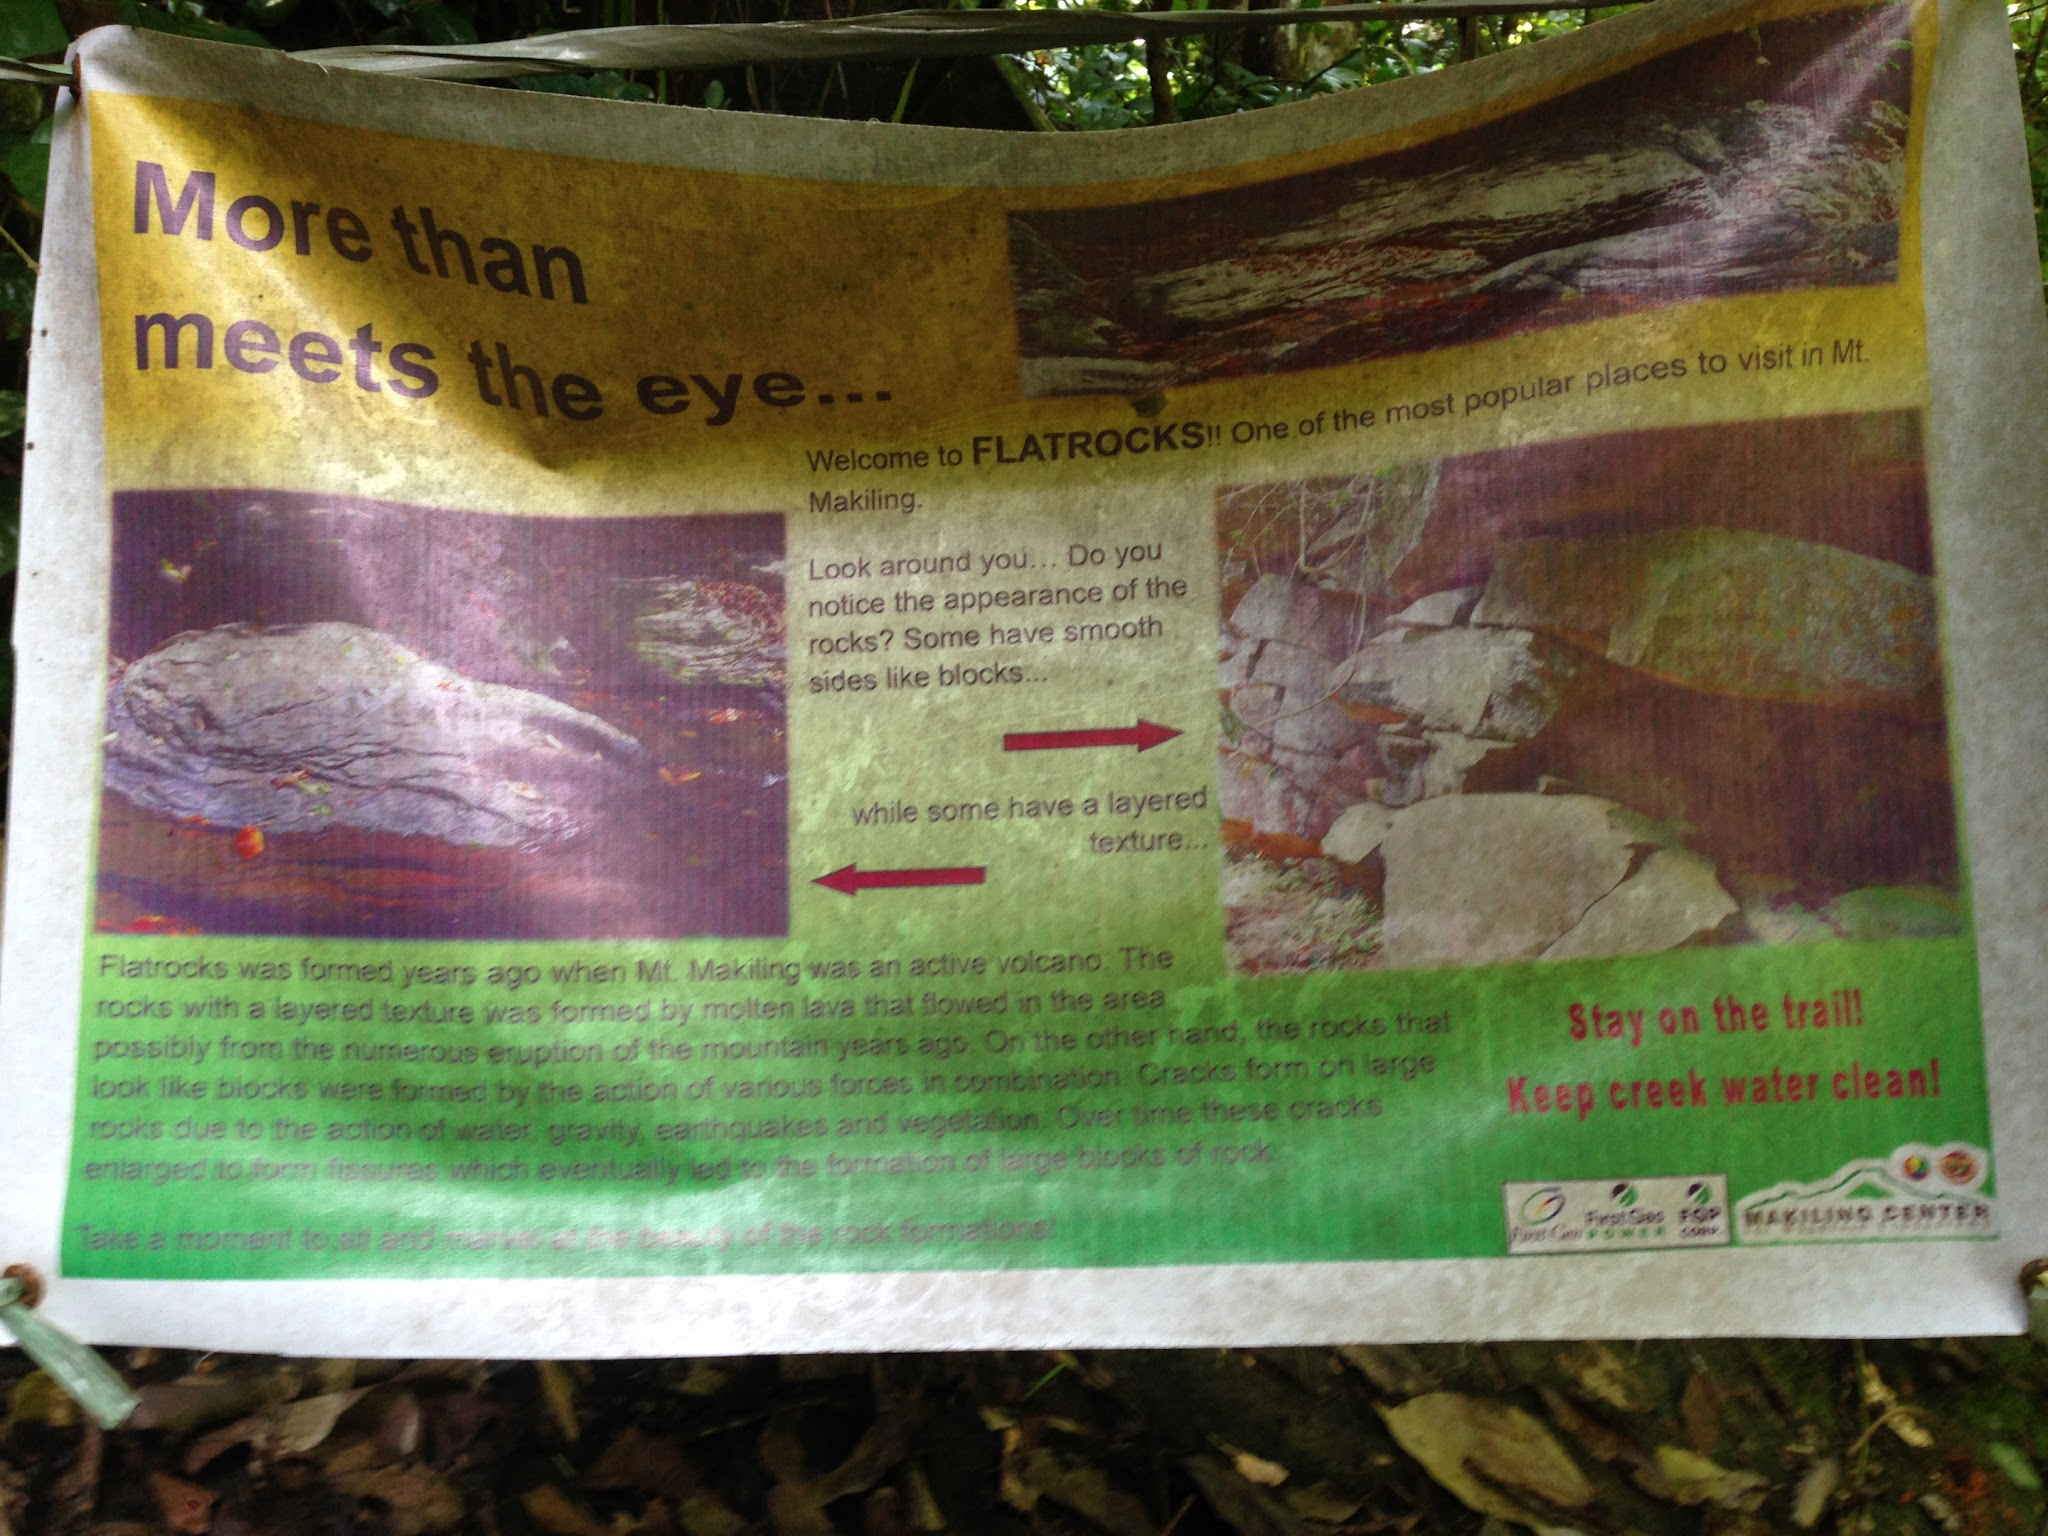 You'll know you are in the right place when you see this poster explaining how Flat Rocks was formed